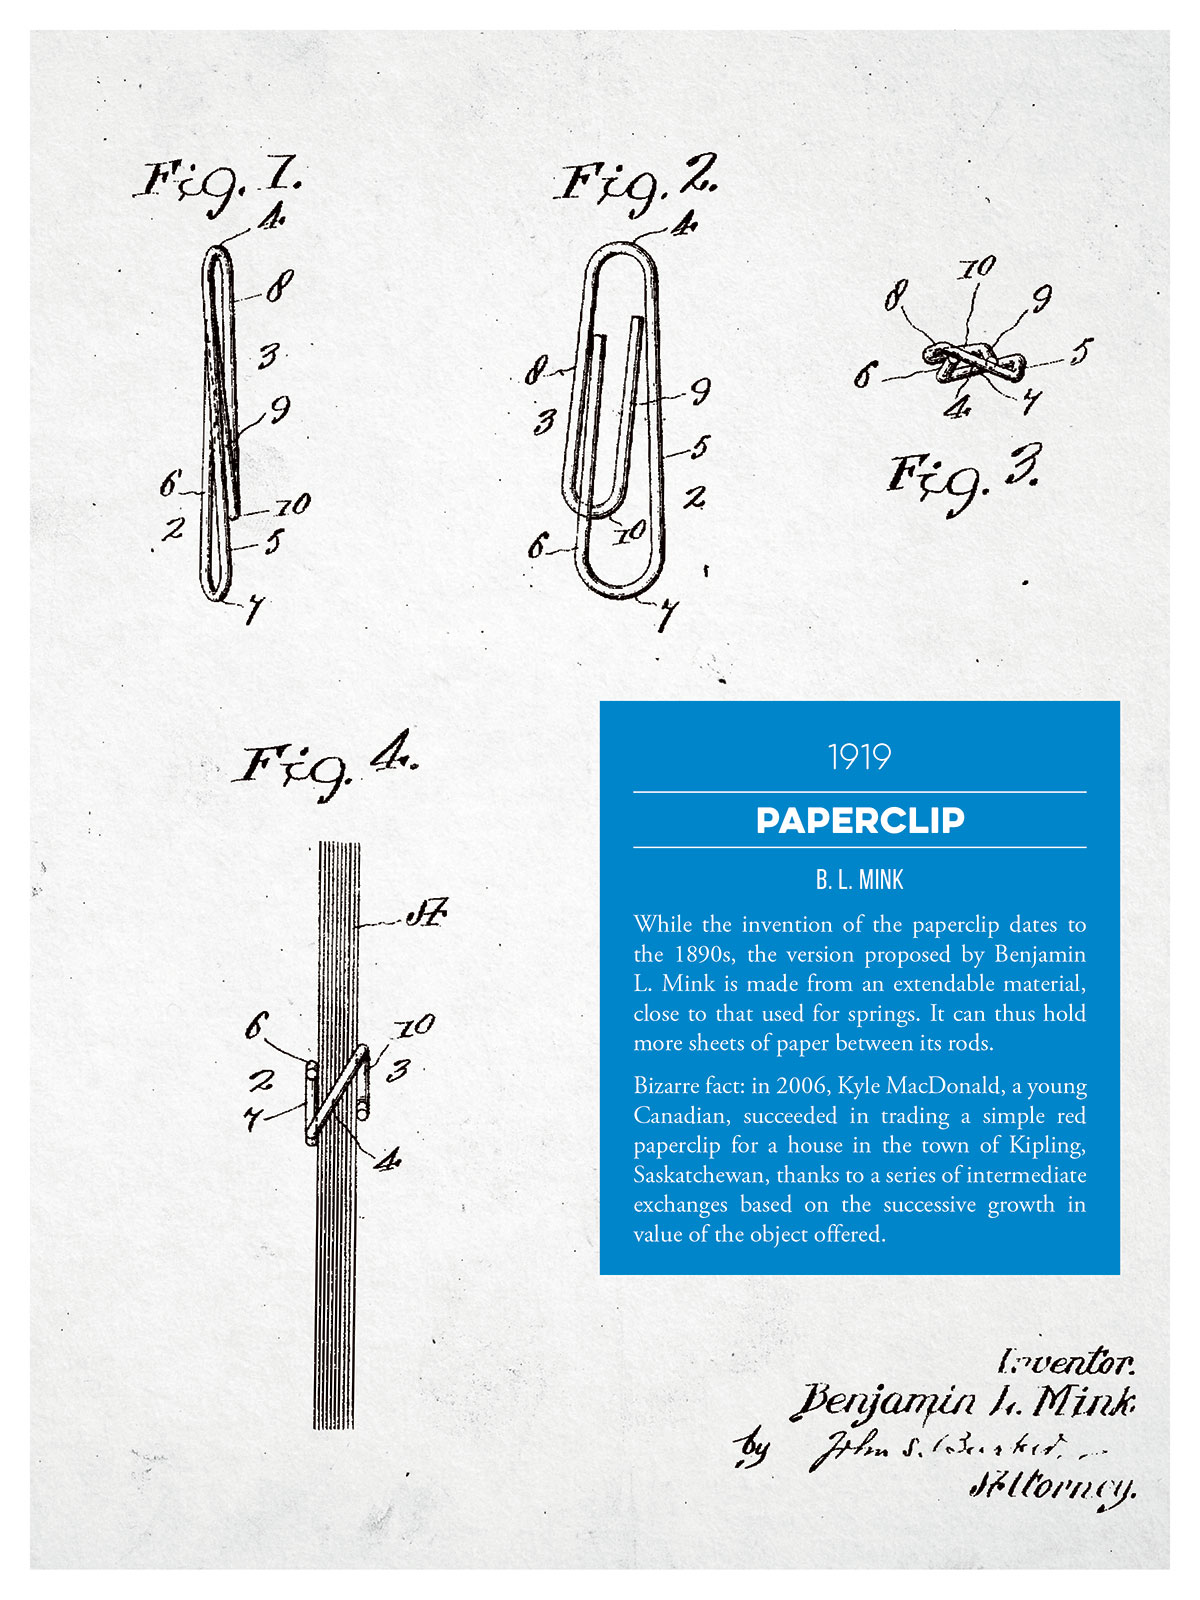 New book catalogues original drawings of iconic inventions